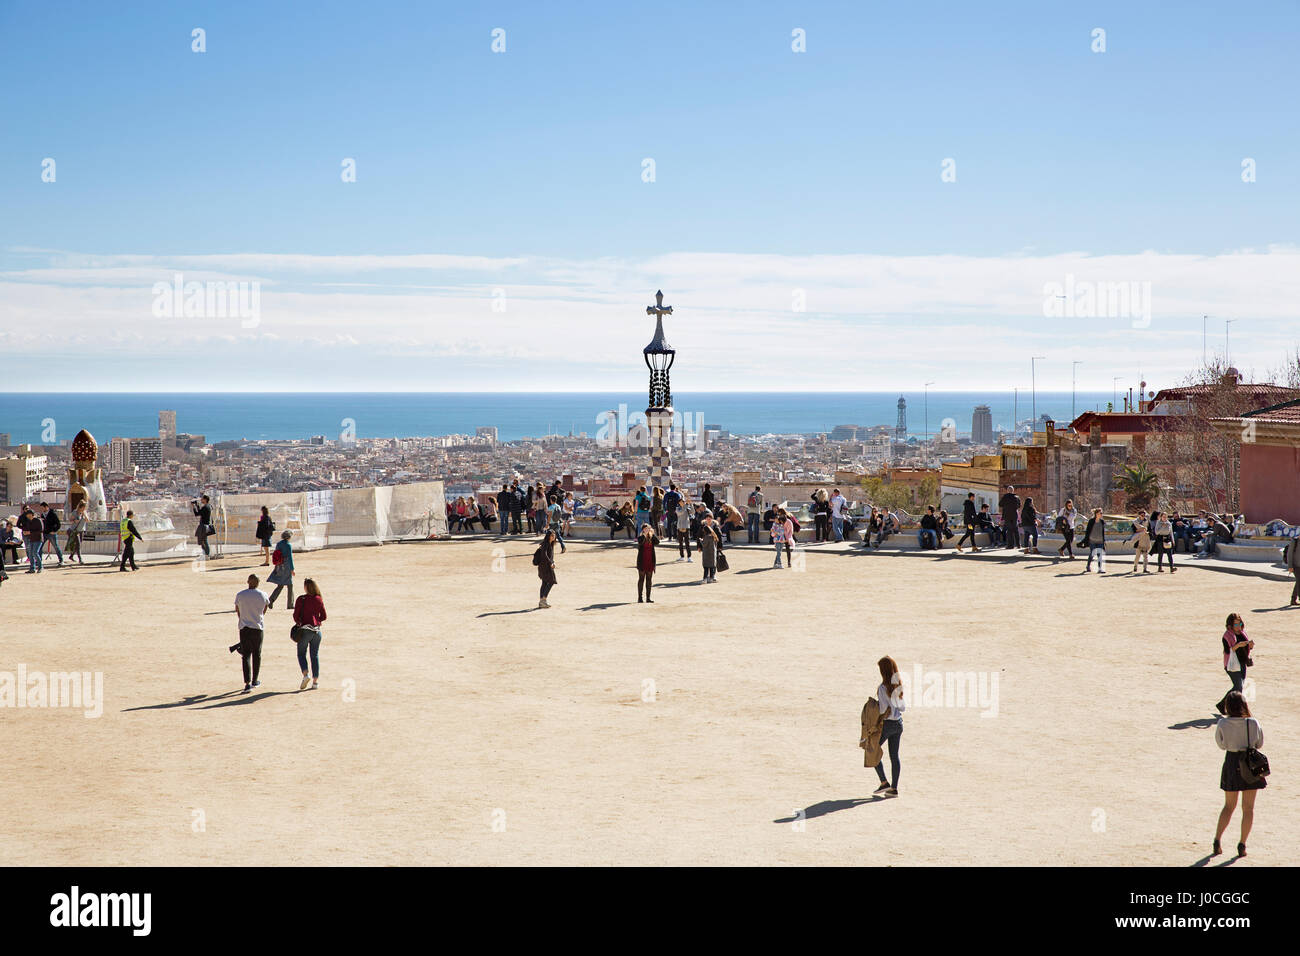 The Park Guell In Barcelona, Spain. - Stock Image